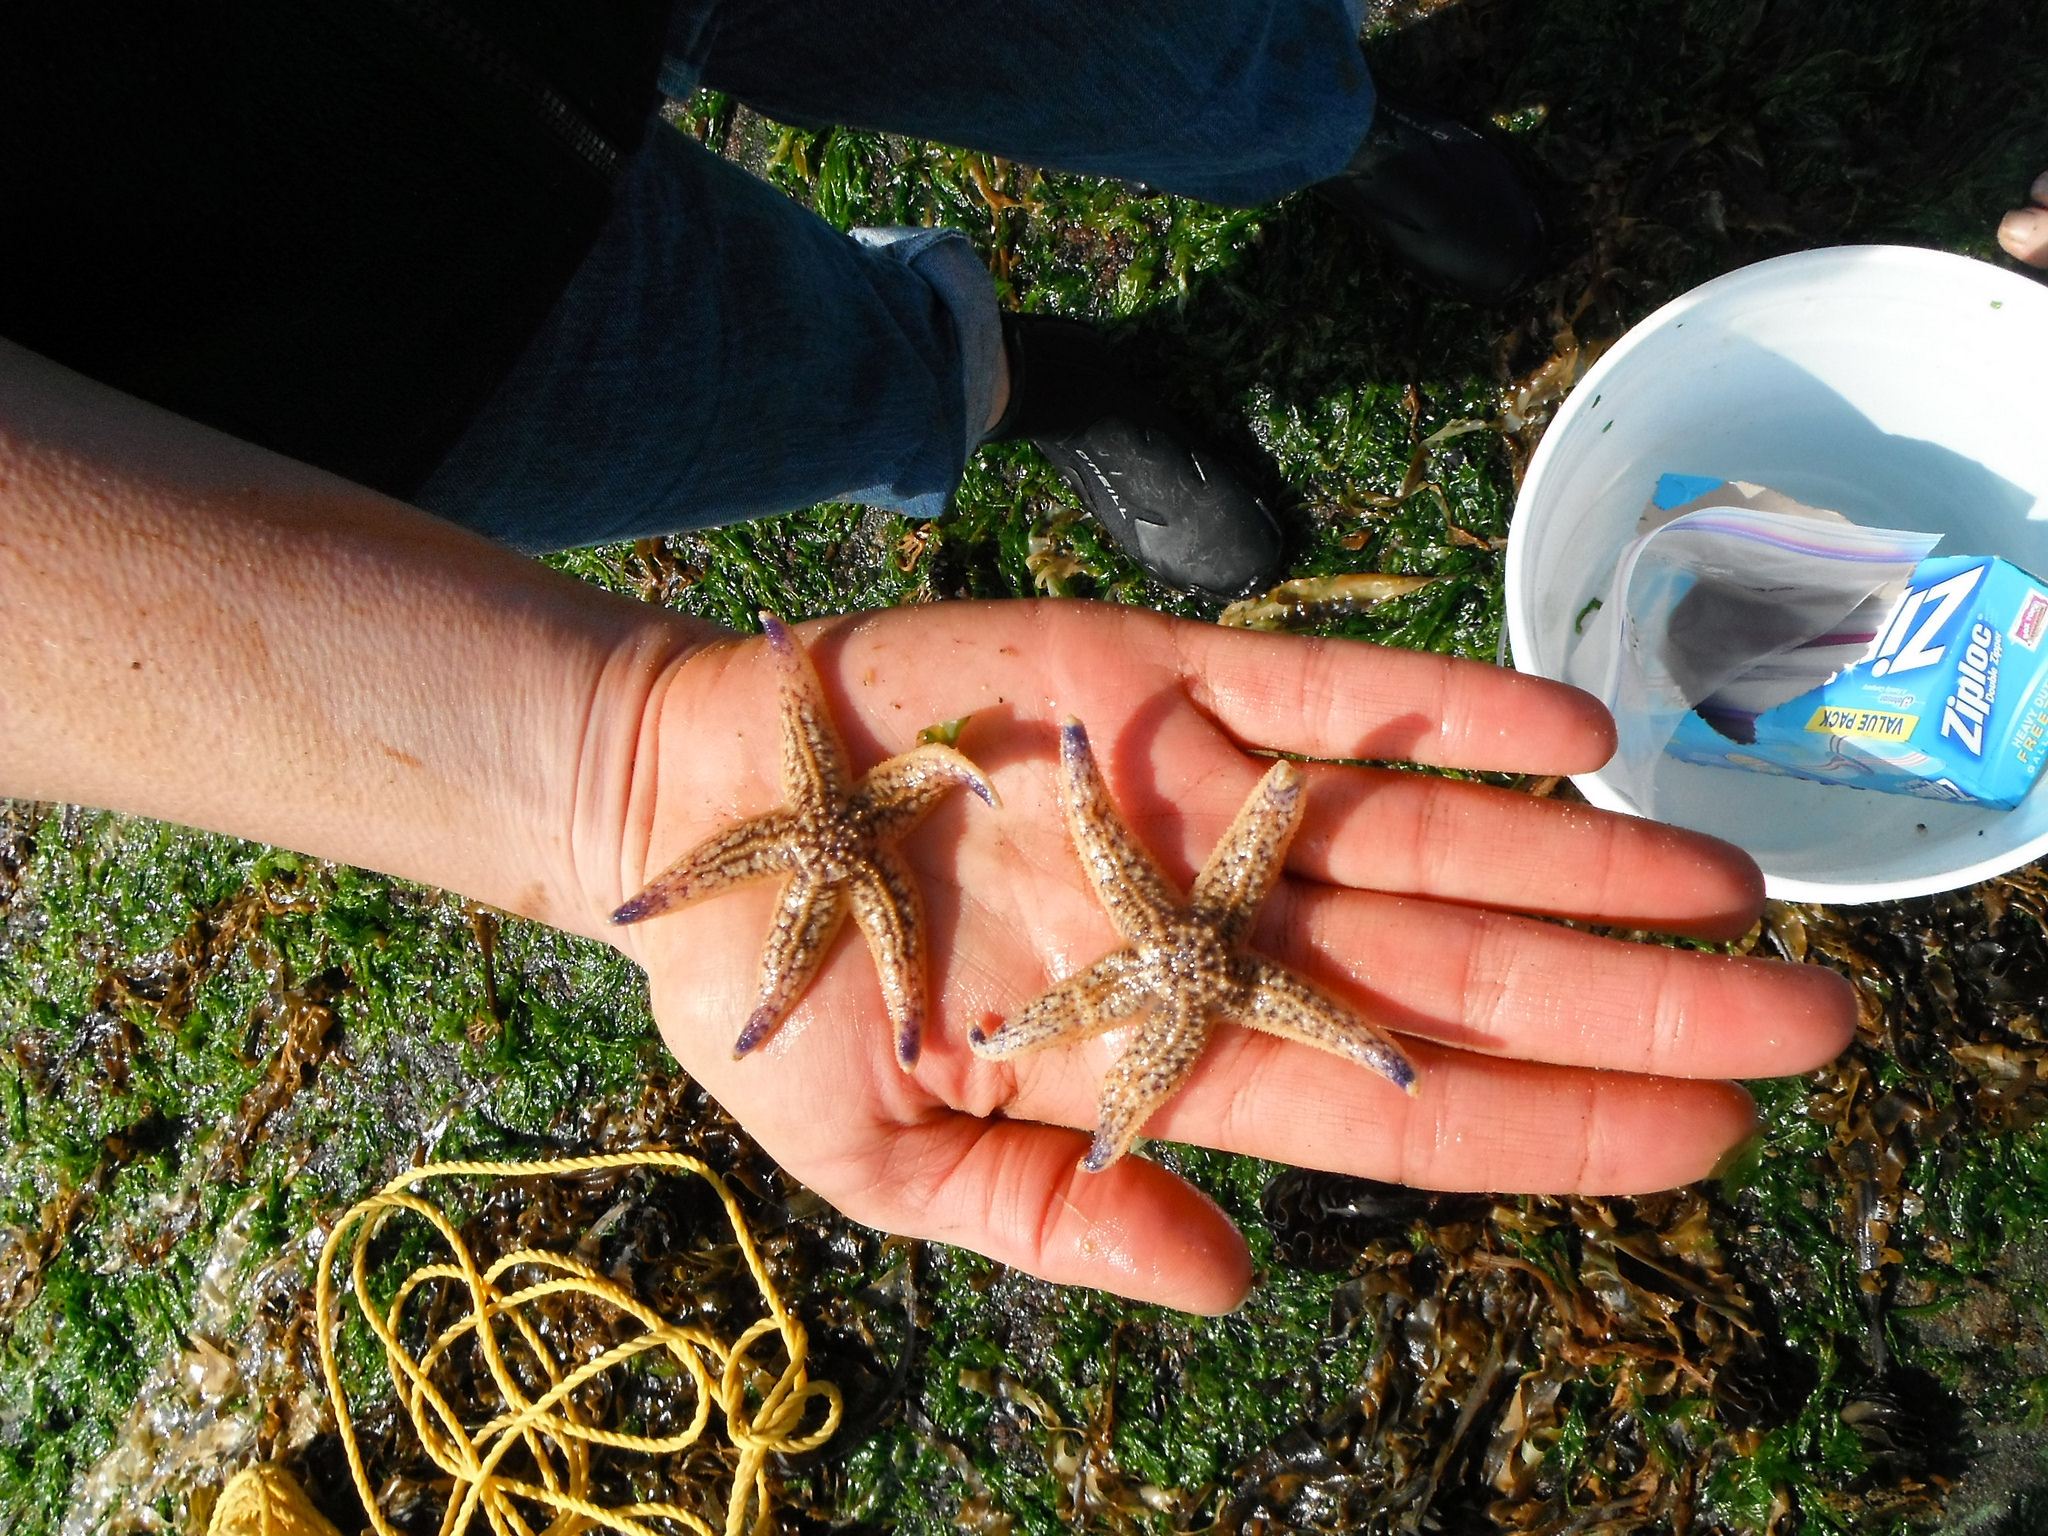 Asian amur sea star (Asterias amurensis) found on the Oregon Coast by Oregon State University scientists following the 2011 Japanese earthquake and tsunami. (OSU)